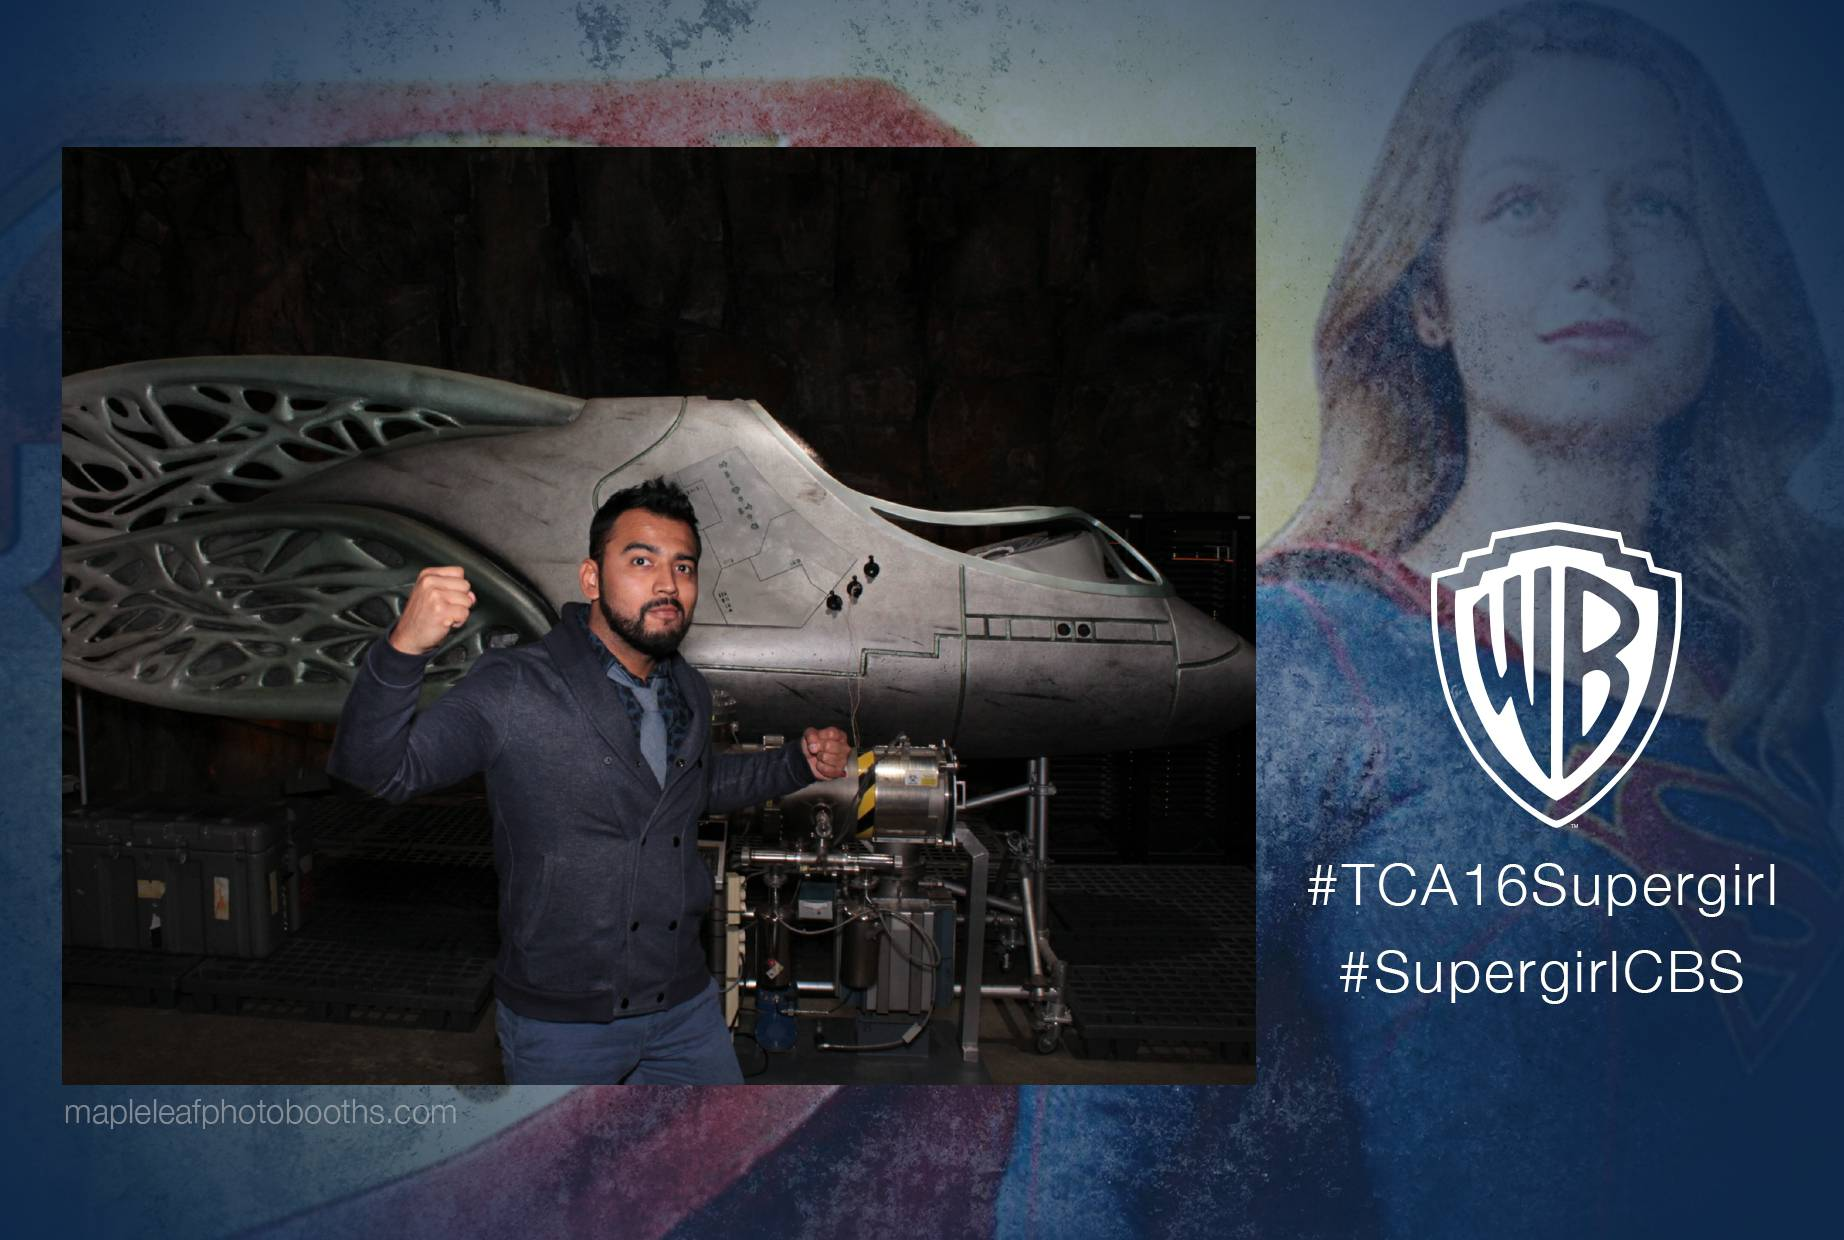 a photo booth photo from the Warner Brothers Super Girl press event in Burbank